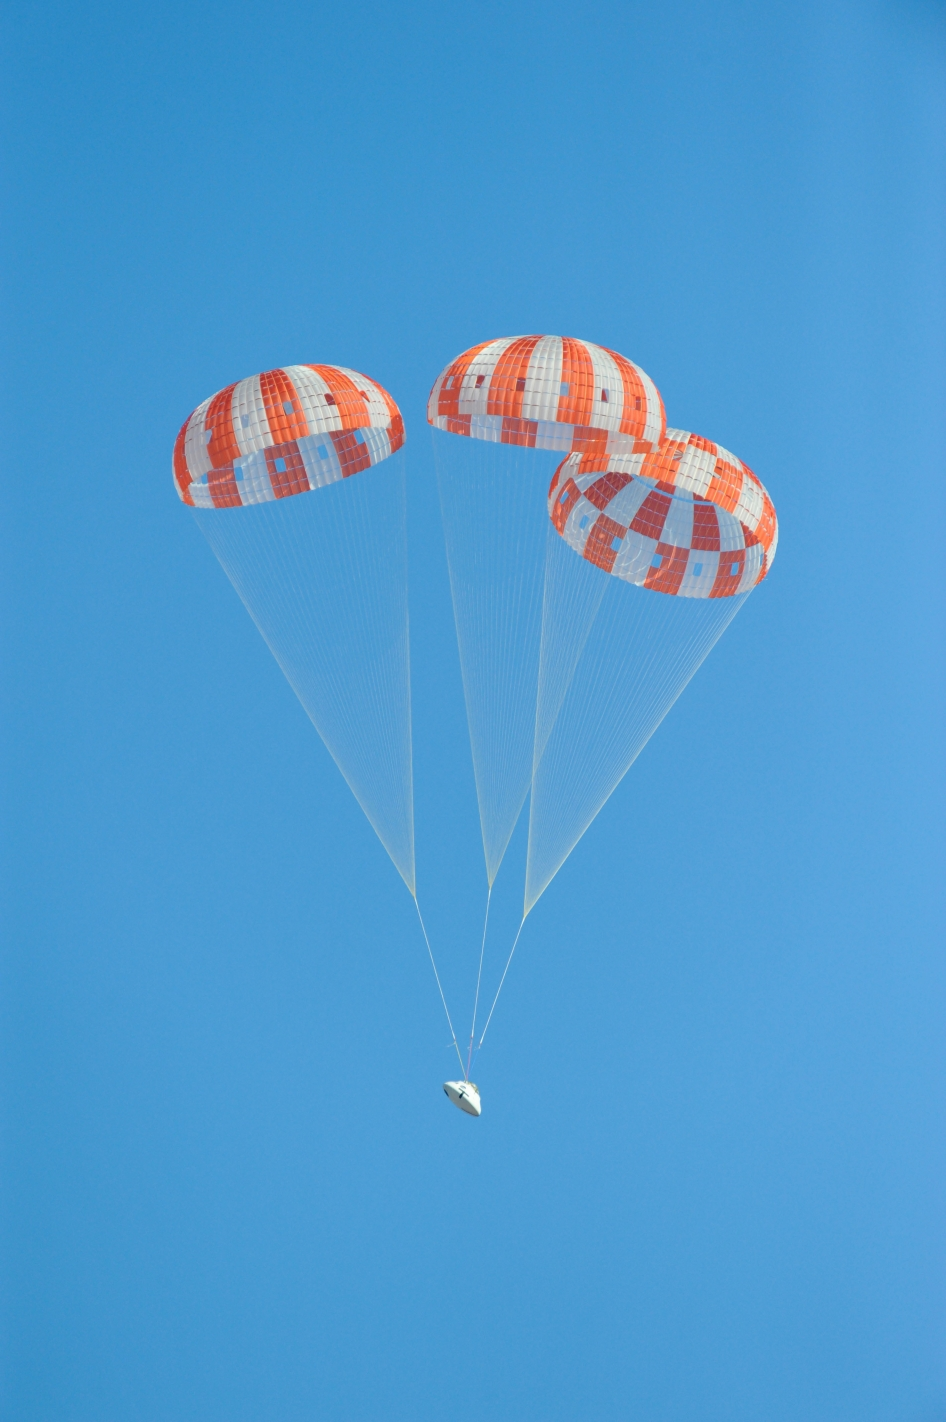 raft parachute nasa - photo #19